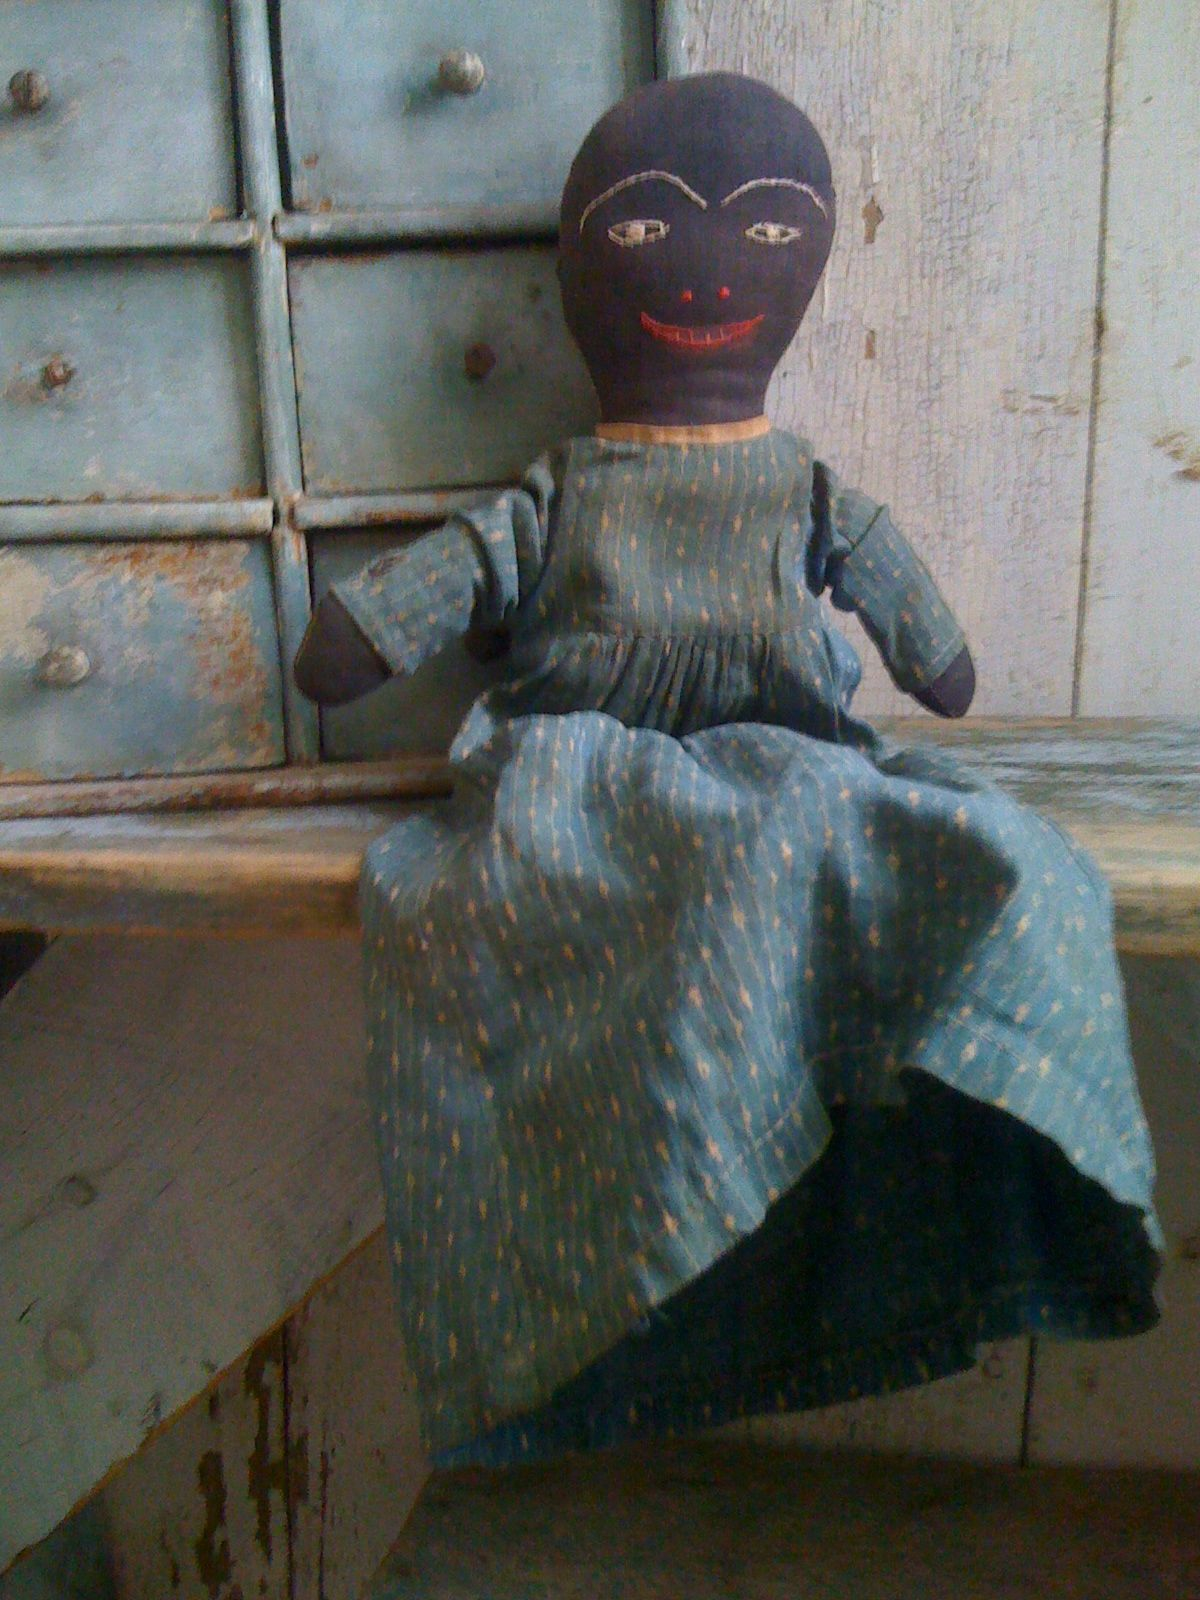 19Th Folky  Cloth Doll with stitched facial features.